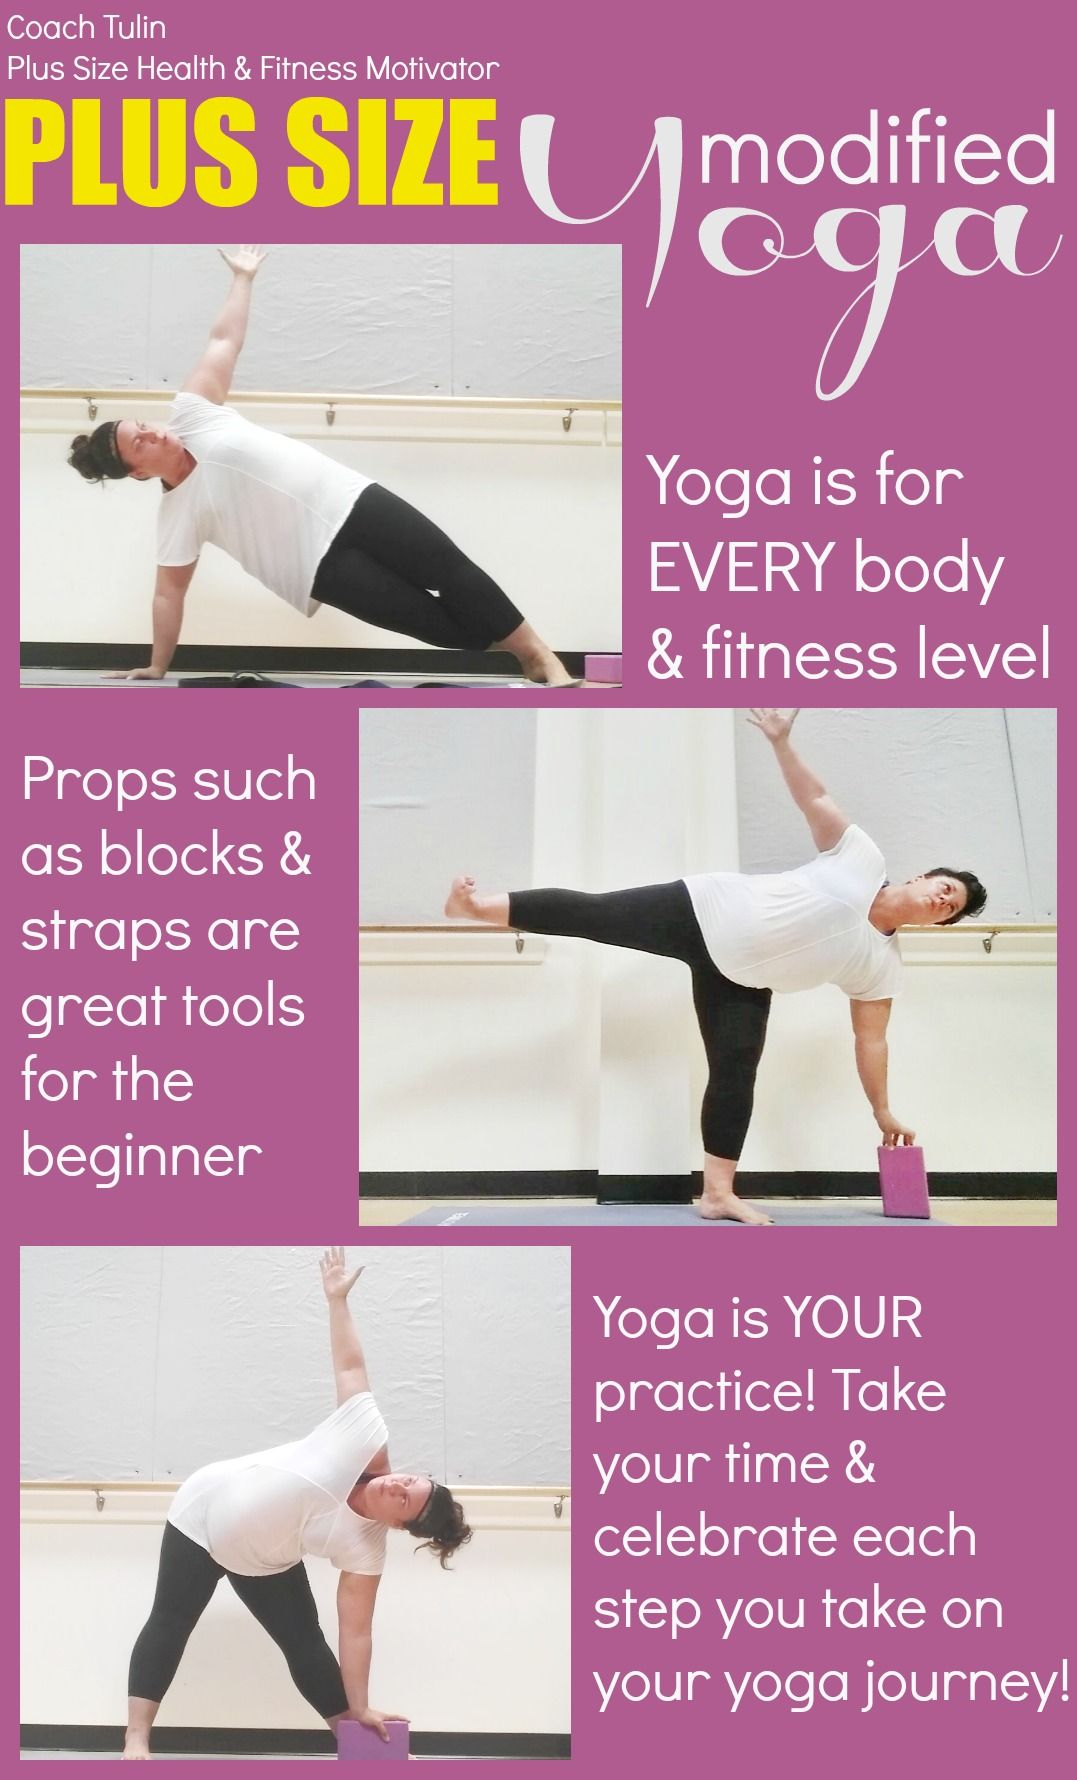 Plus Size Modified Yoga - Yoga is for EVERY body & fitness level ...